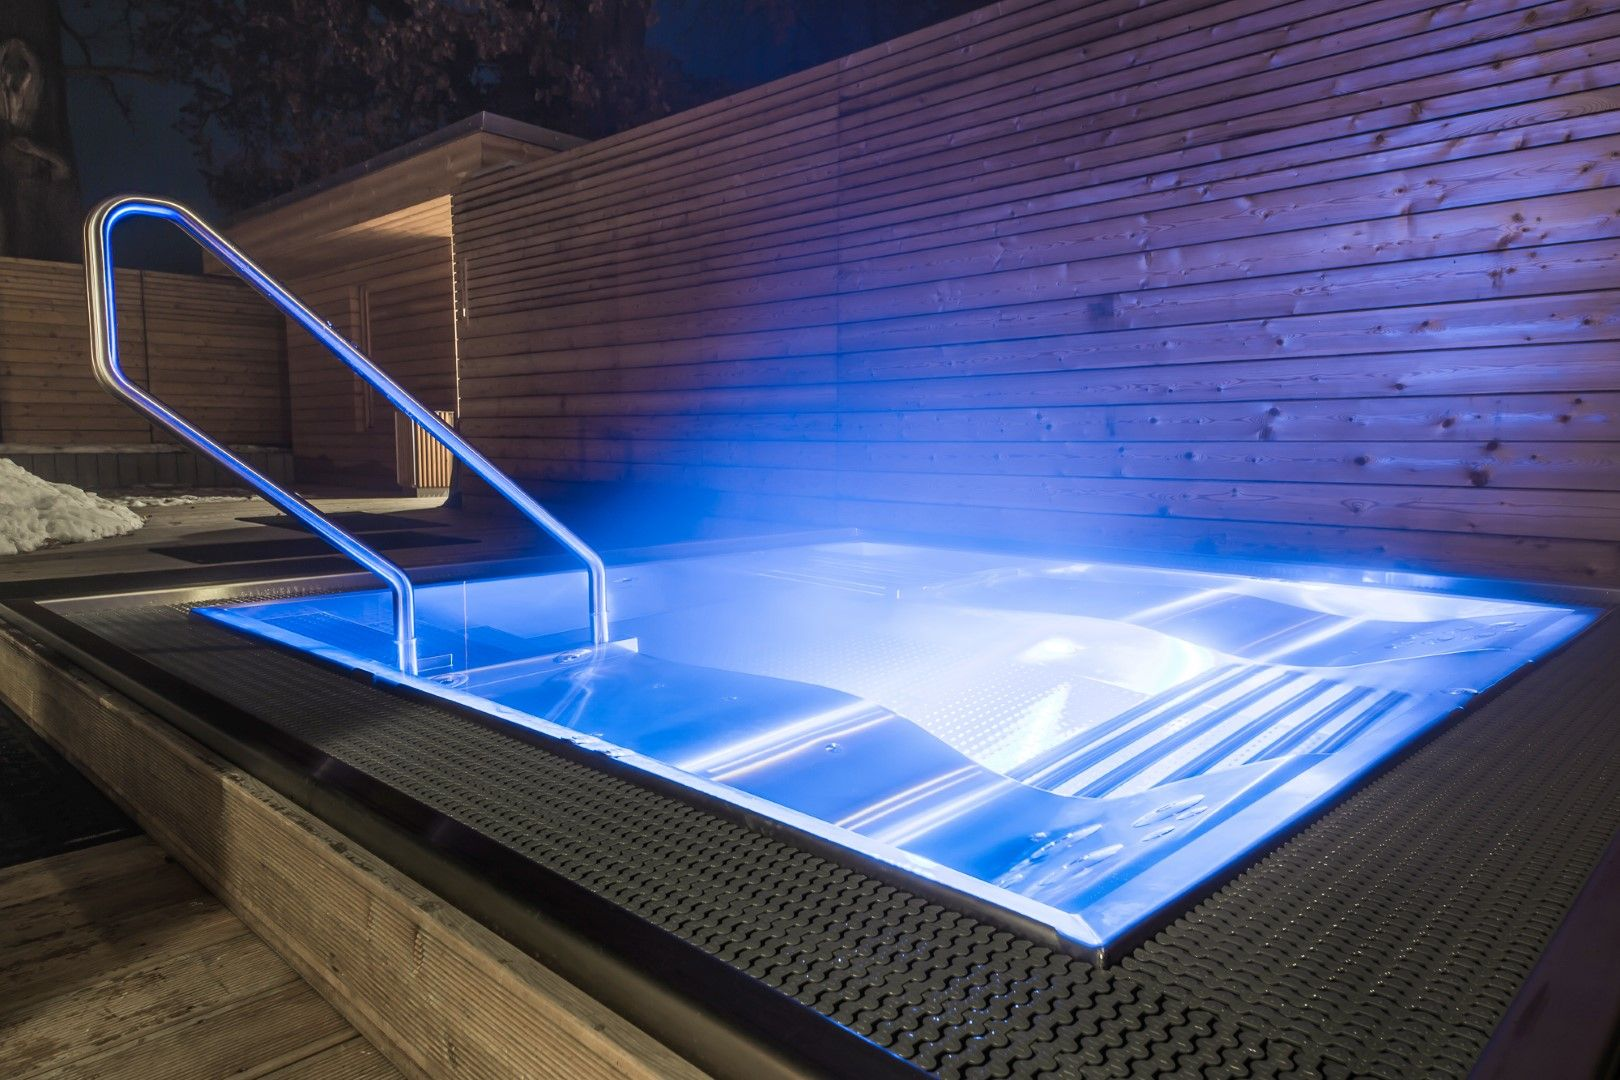 Stainless Steel Spa Imaginox In Hotel Wellness Piscine